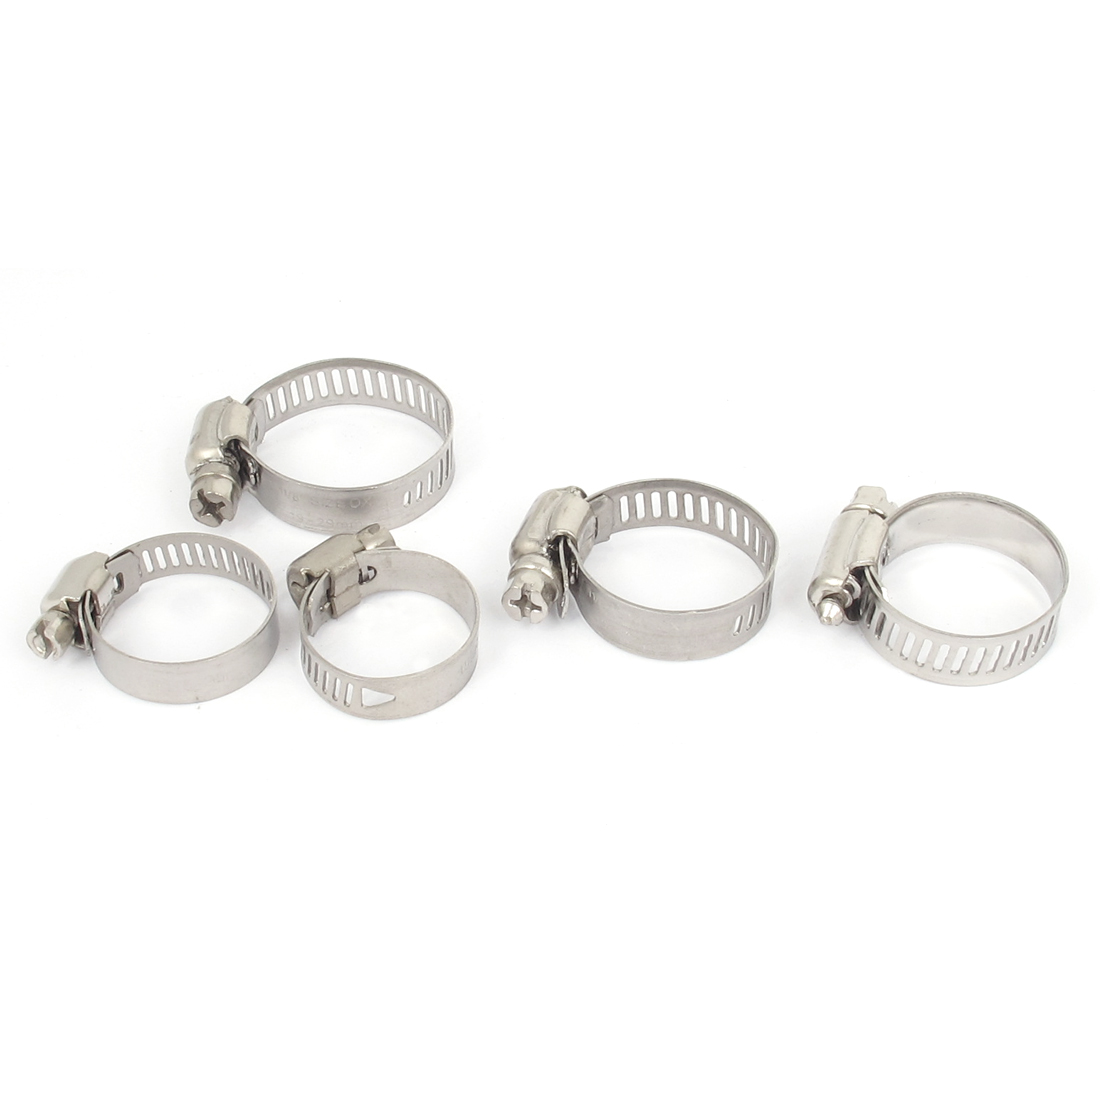 16mm to 25mm Range 10mm Band Width Stainless Steel Hose Pipe Clamp Hoop 5pcs